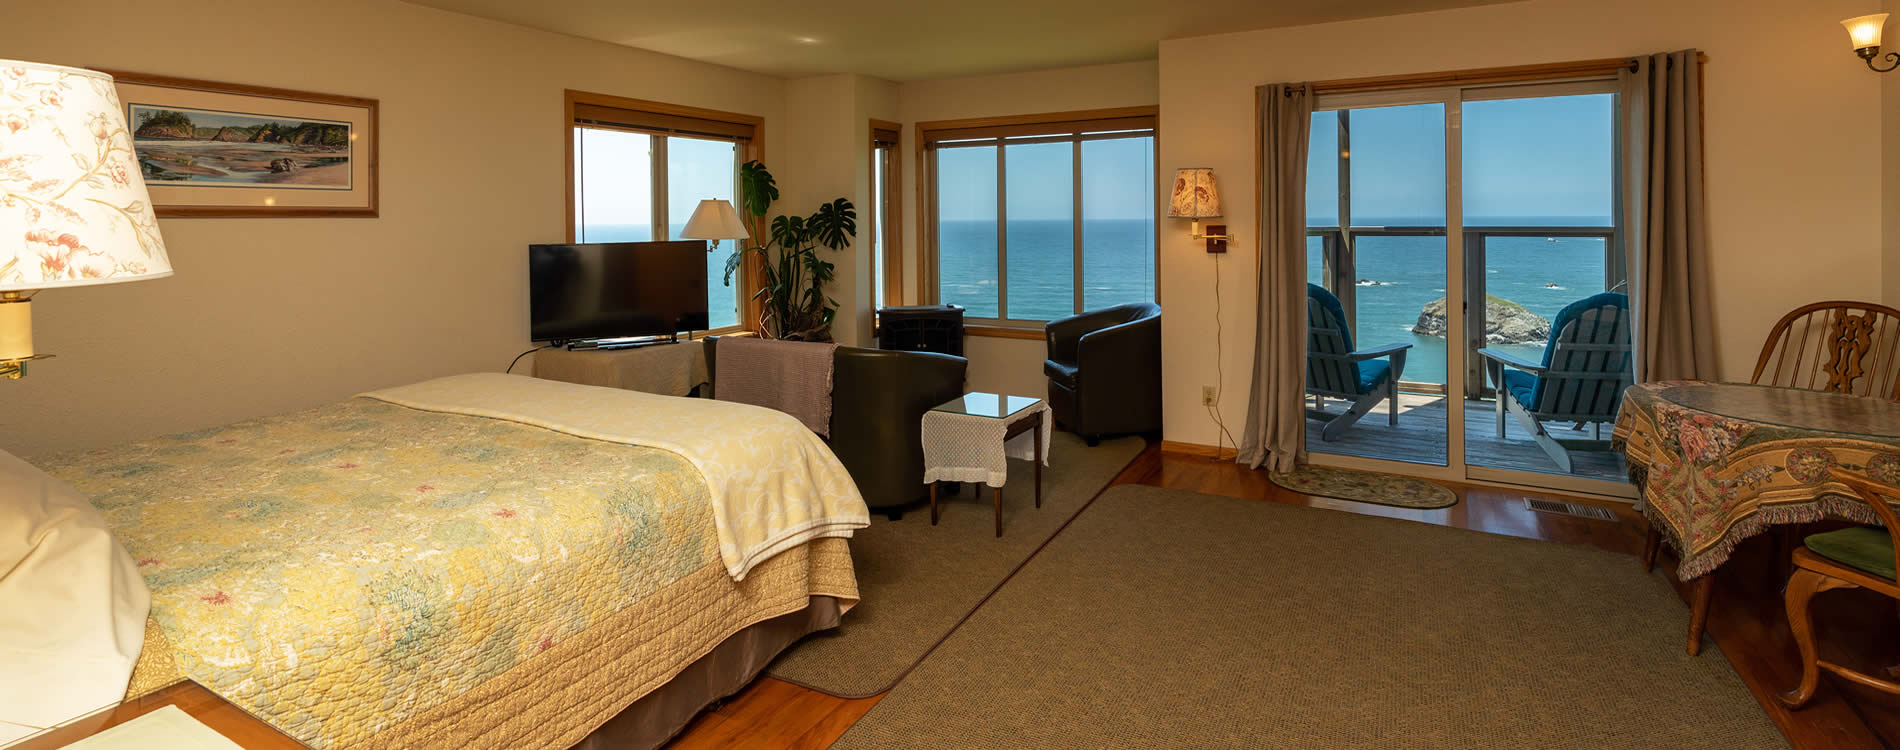 guest room with bed and couch northern california coast bed and breakfast - oceanview lodging in trinidad ca